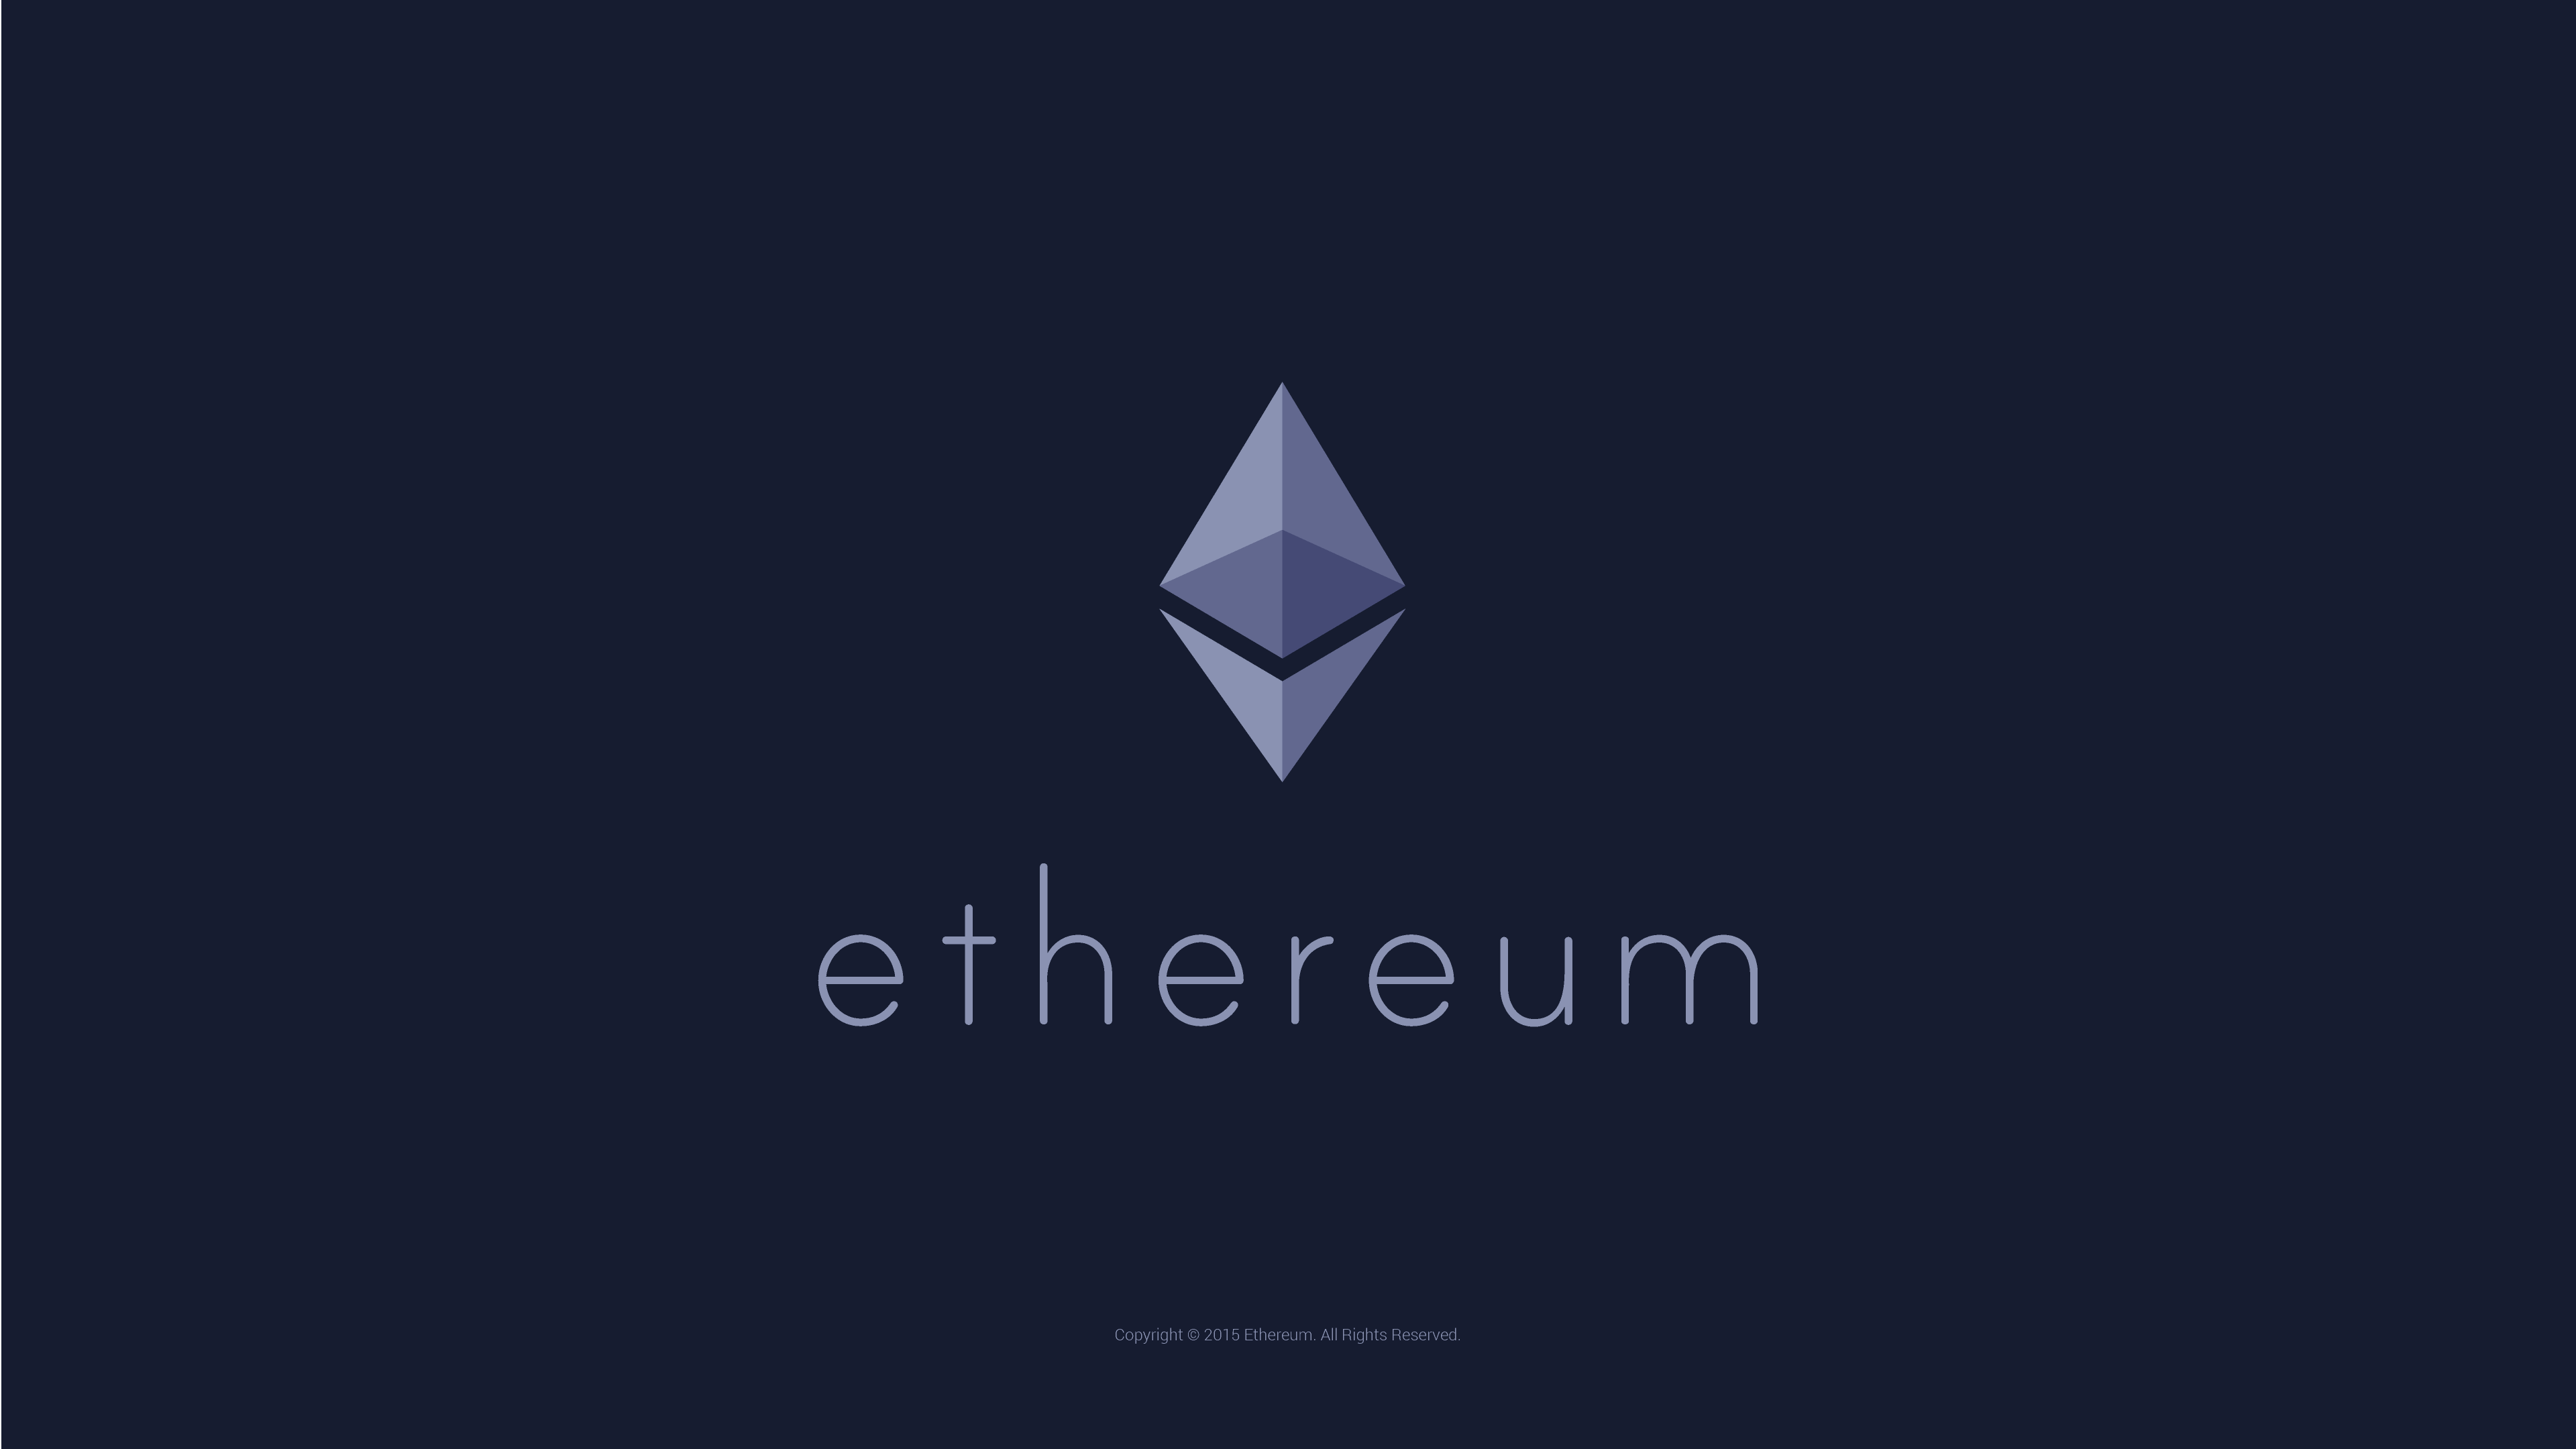 Should Ether Keep Without a Limited Supply or Not?